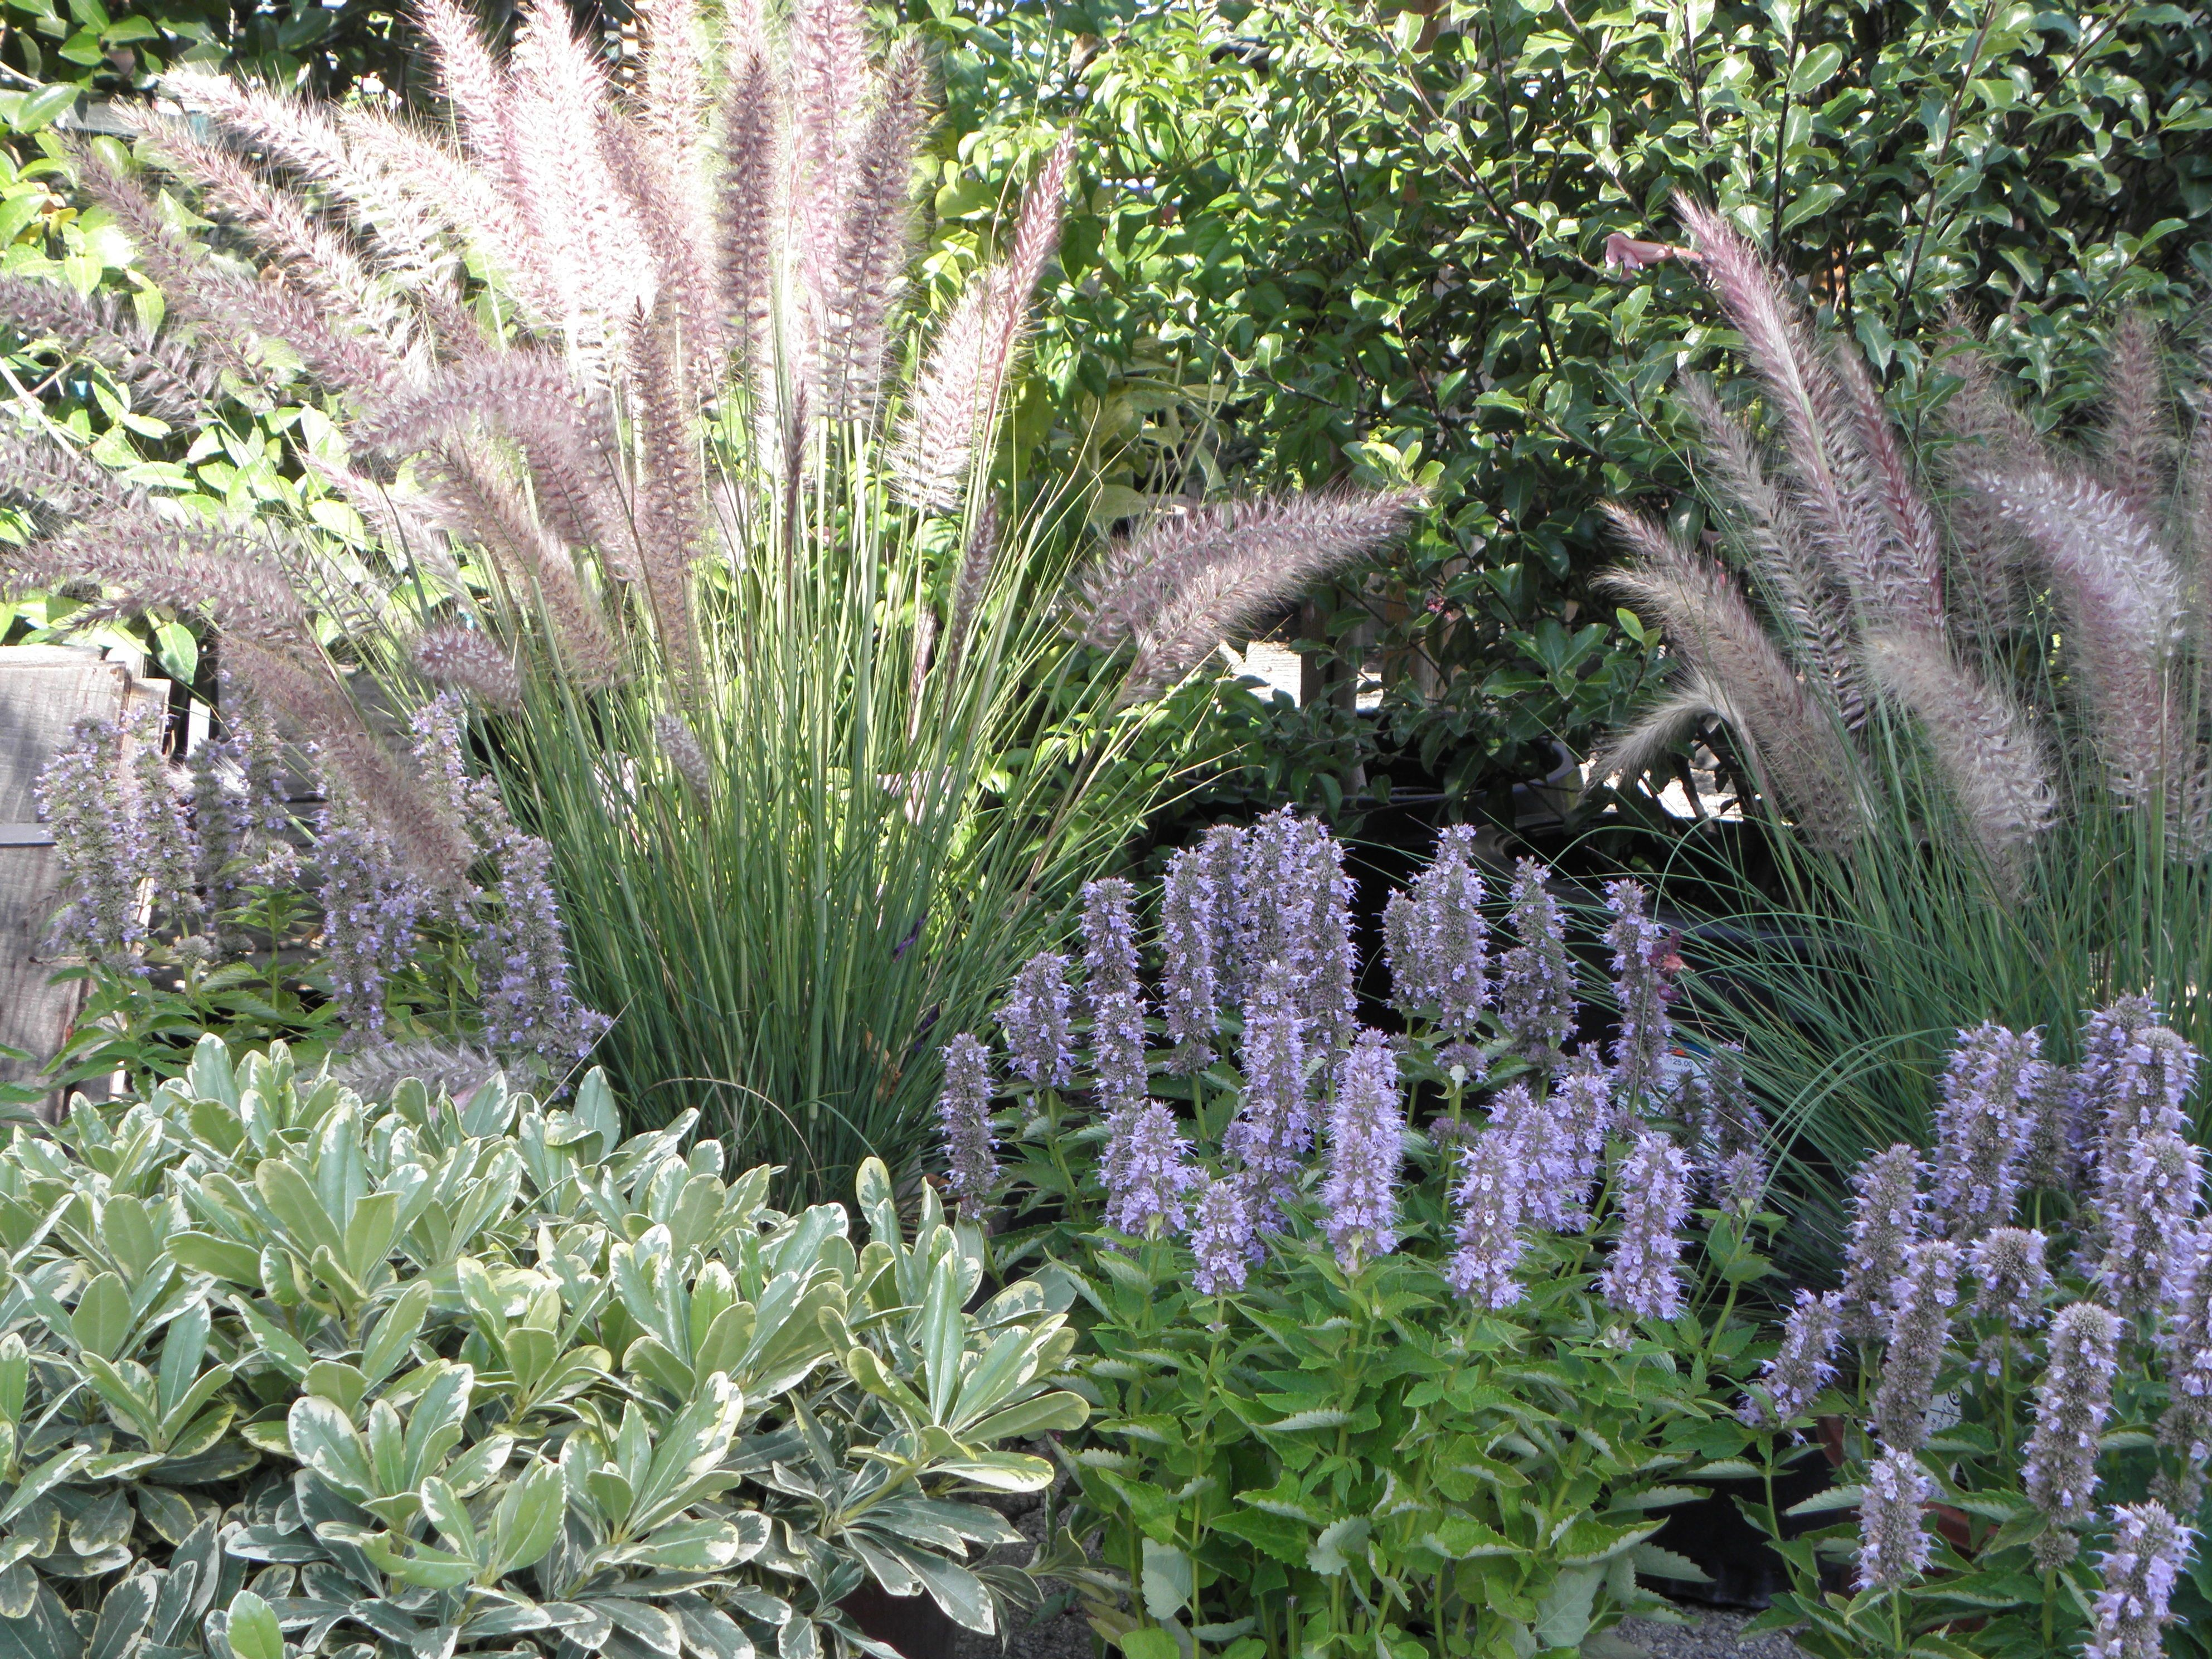 Another type of miscanthus grass with sage.